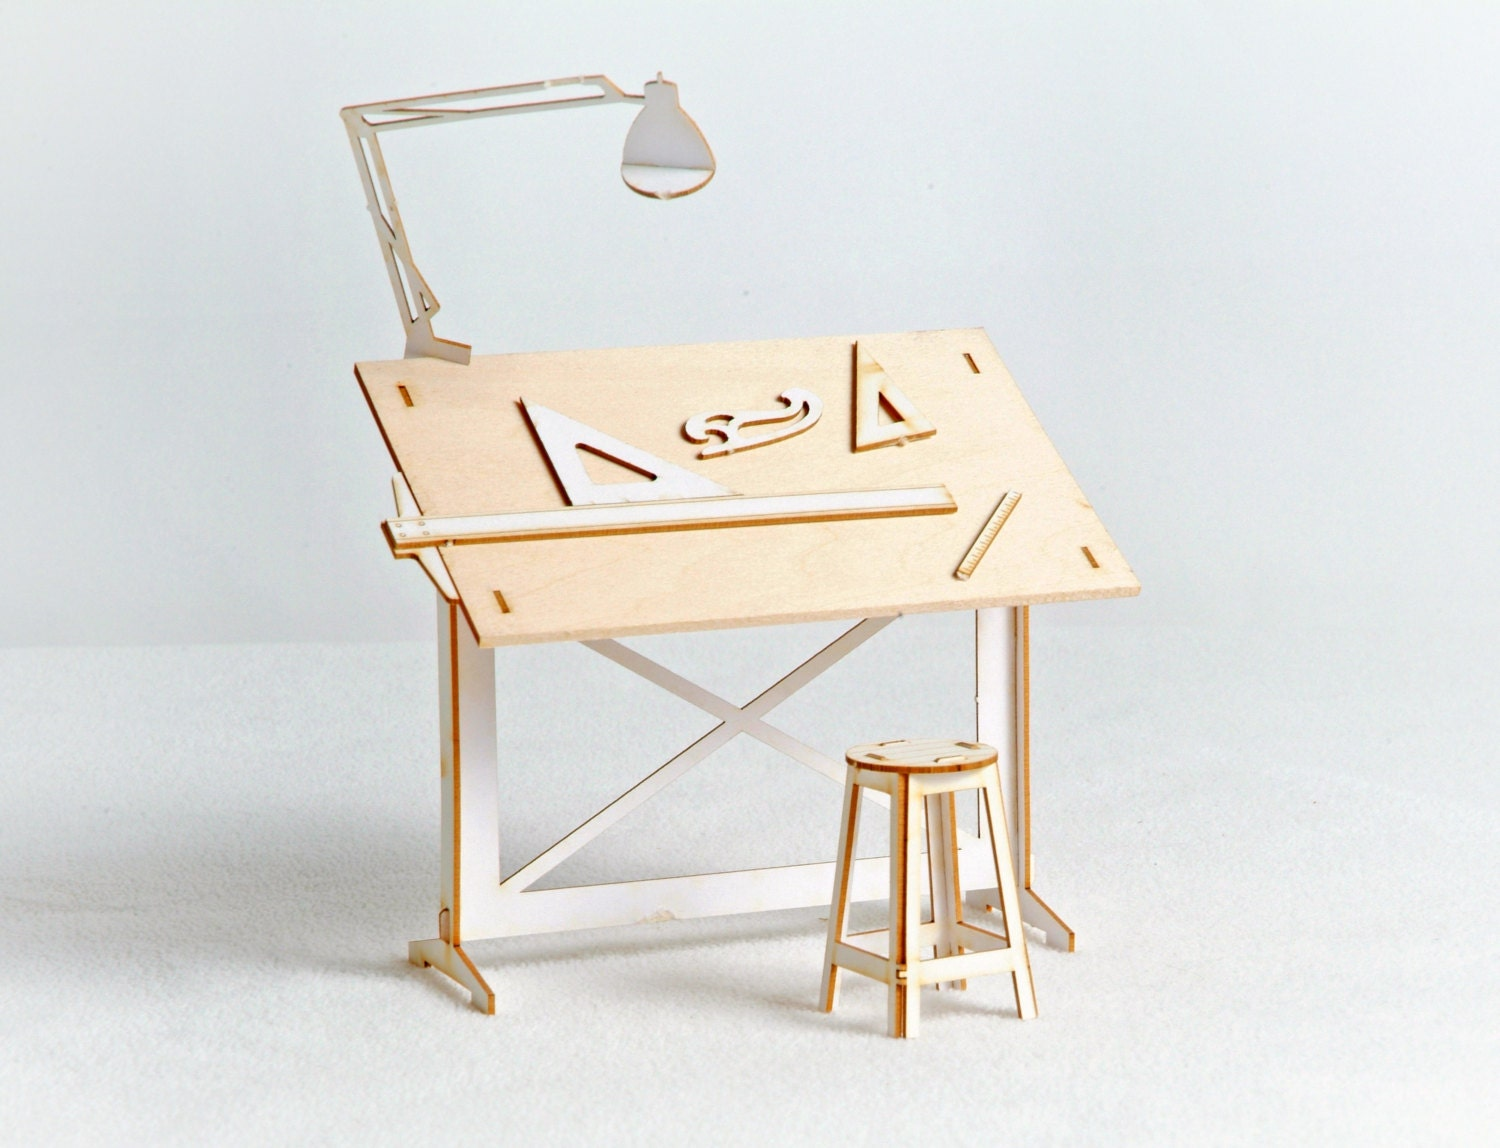 Miniature drafting table model kit with real wood tabletop for Architecture drawing tools